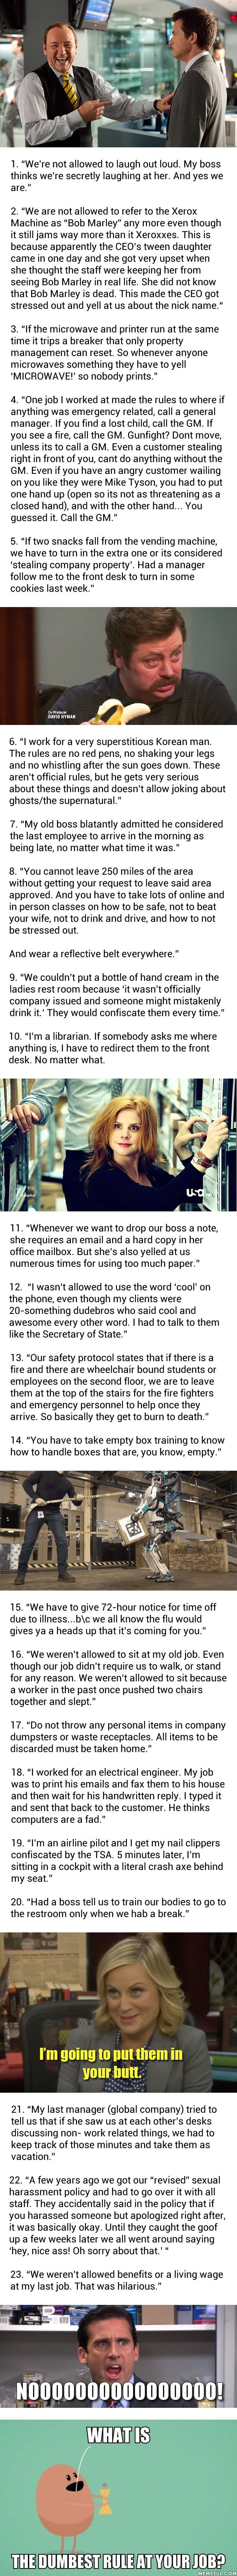 Dumbest workplace rules